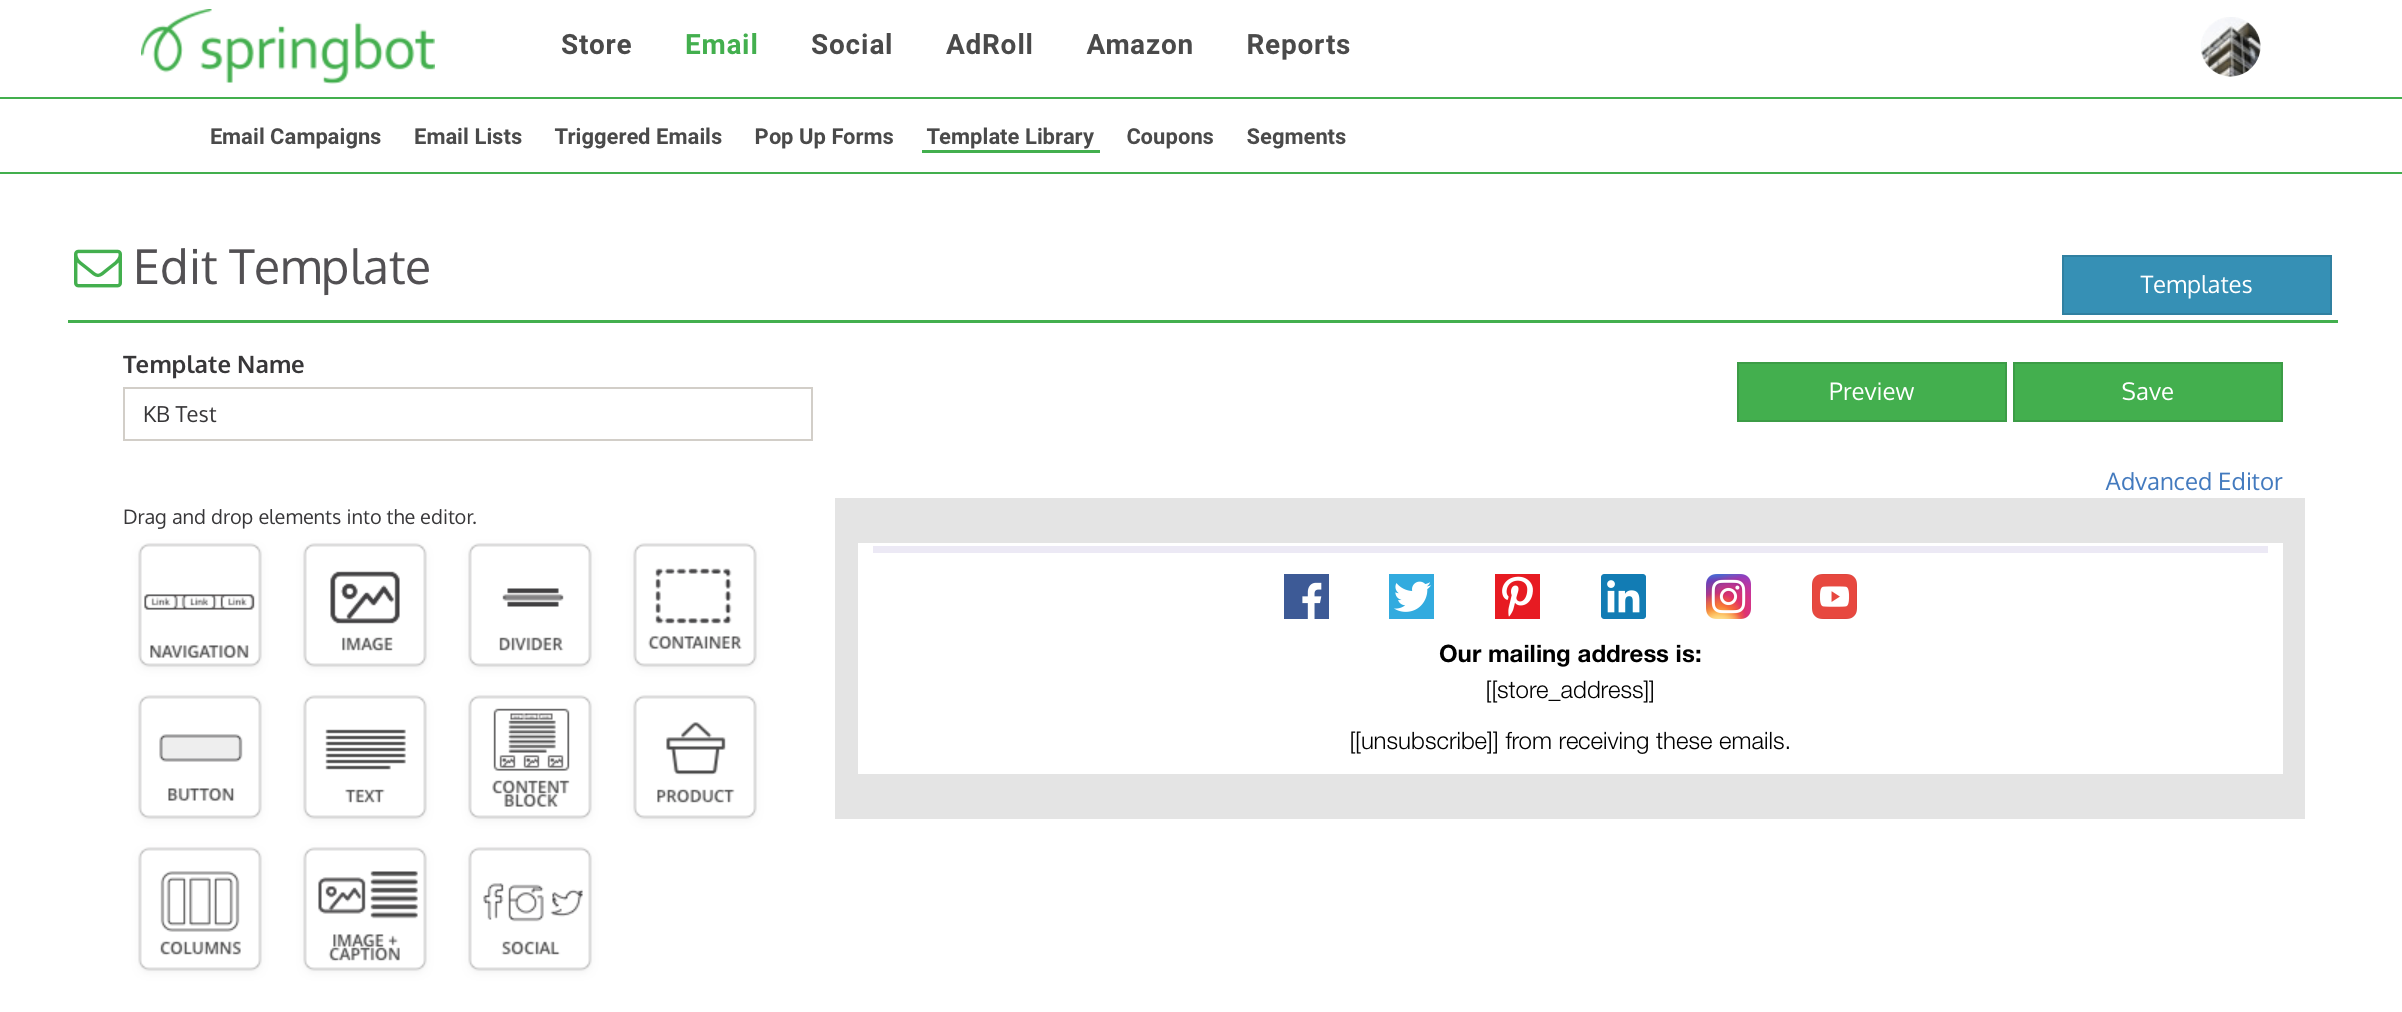 Springbot — How do I Create a Template using Springbot\'s Email ...